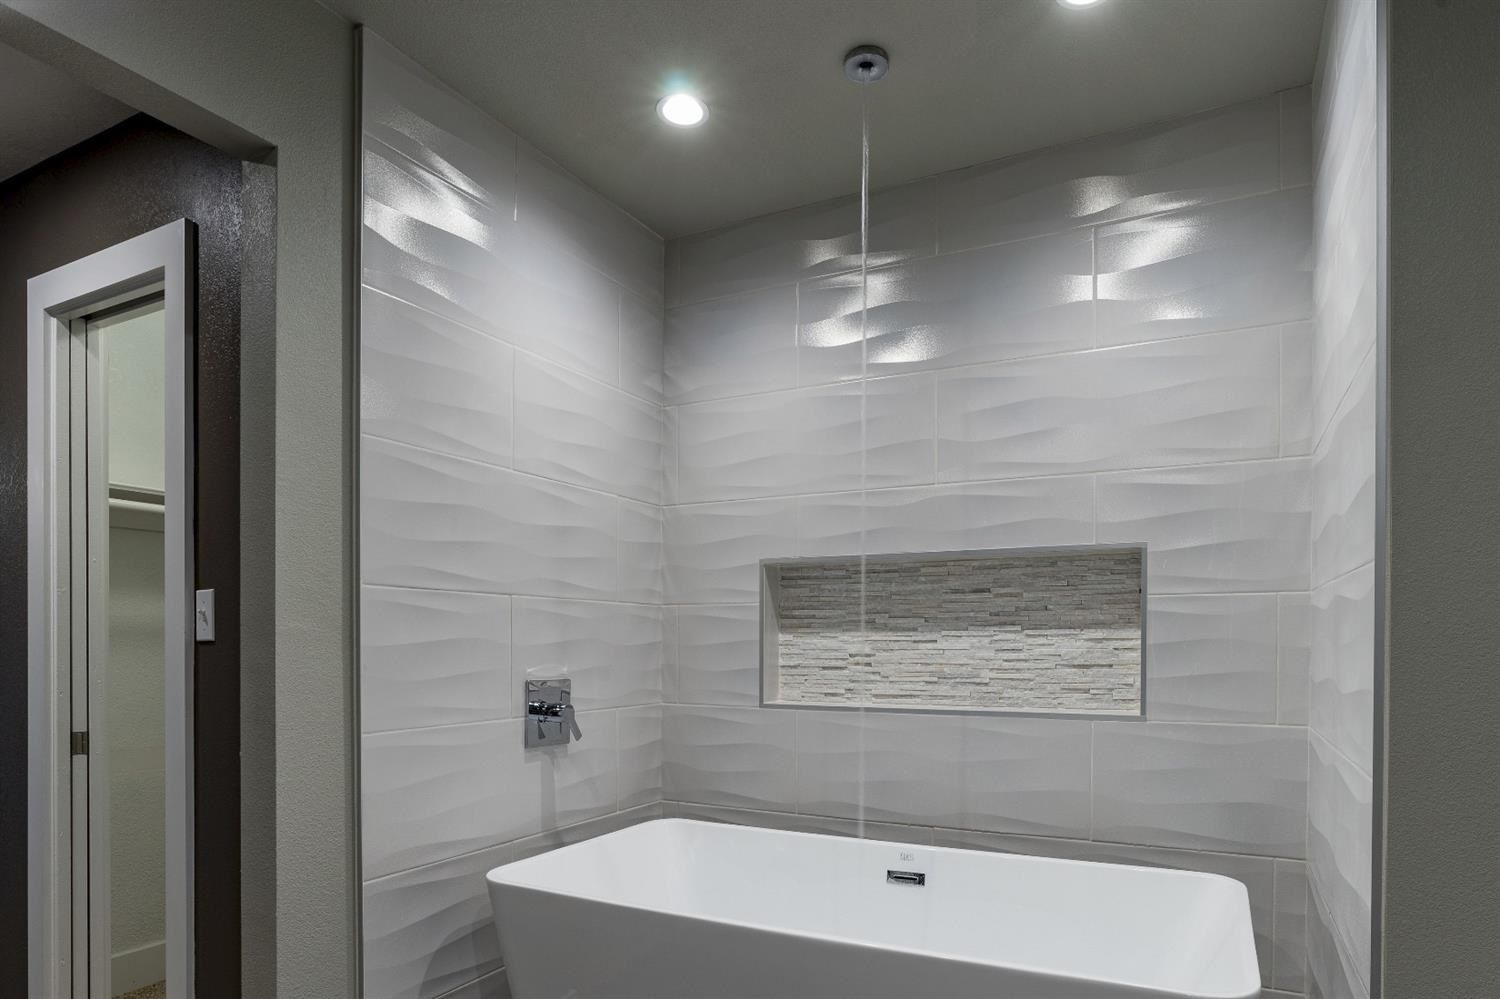 Tiletuesday Features Super Cool Installation By Icon Construction Out Of Fresno California Using Our A Bathroom Shower Walls Trendy Bathroom Shower Shelves